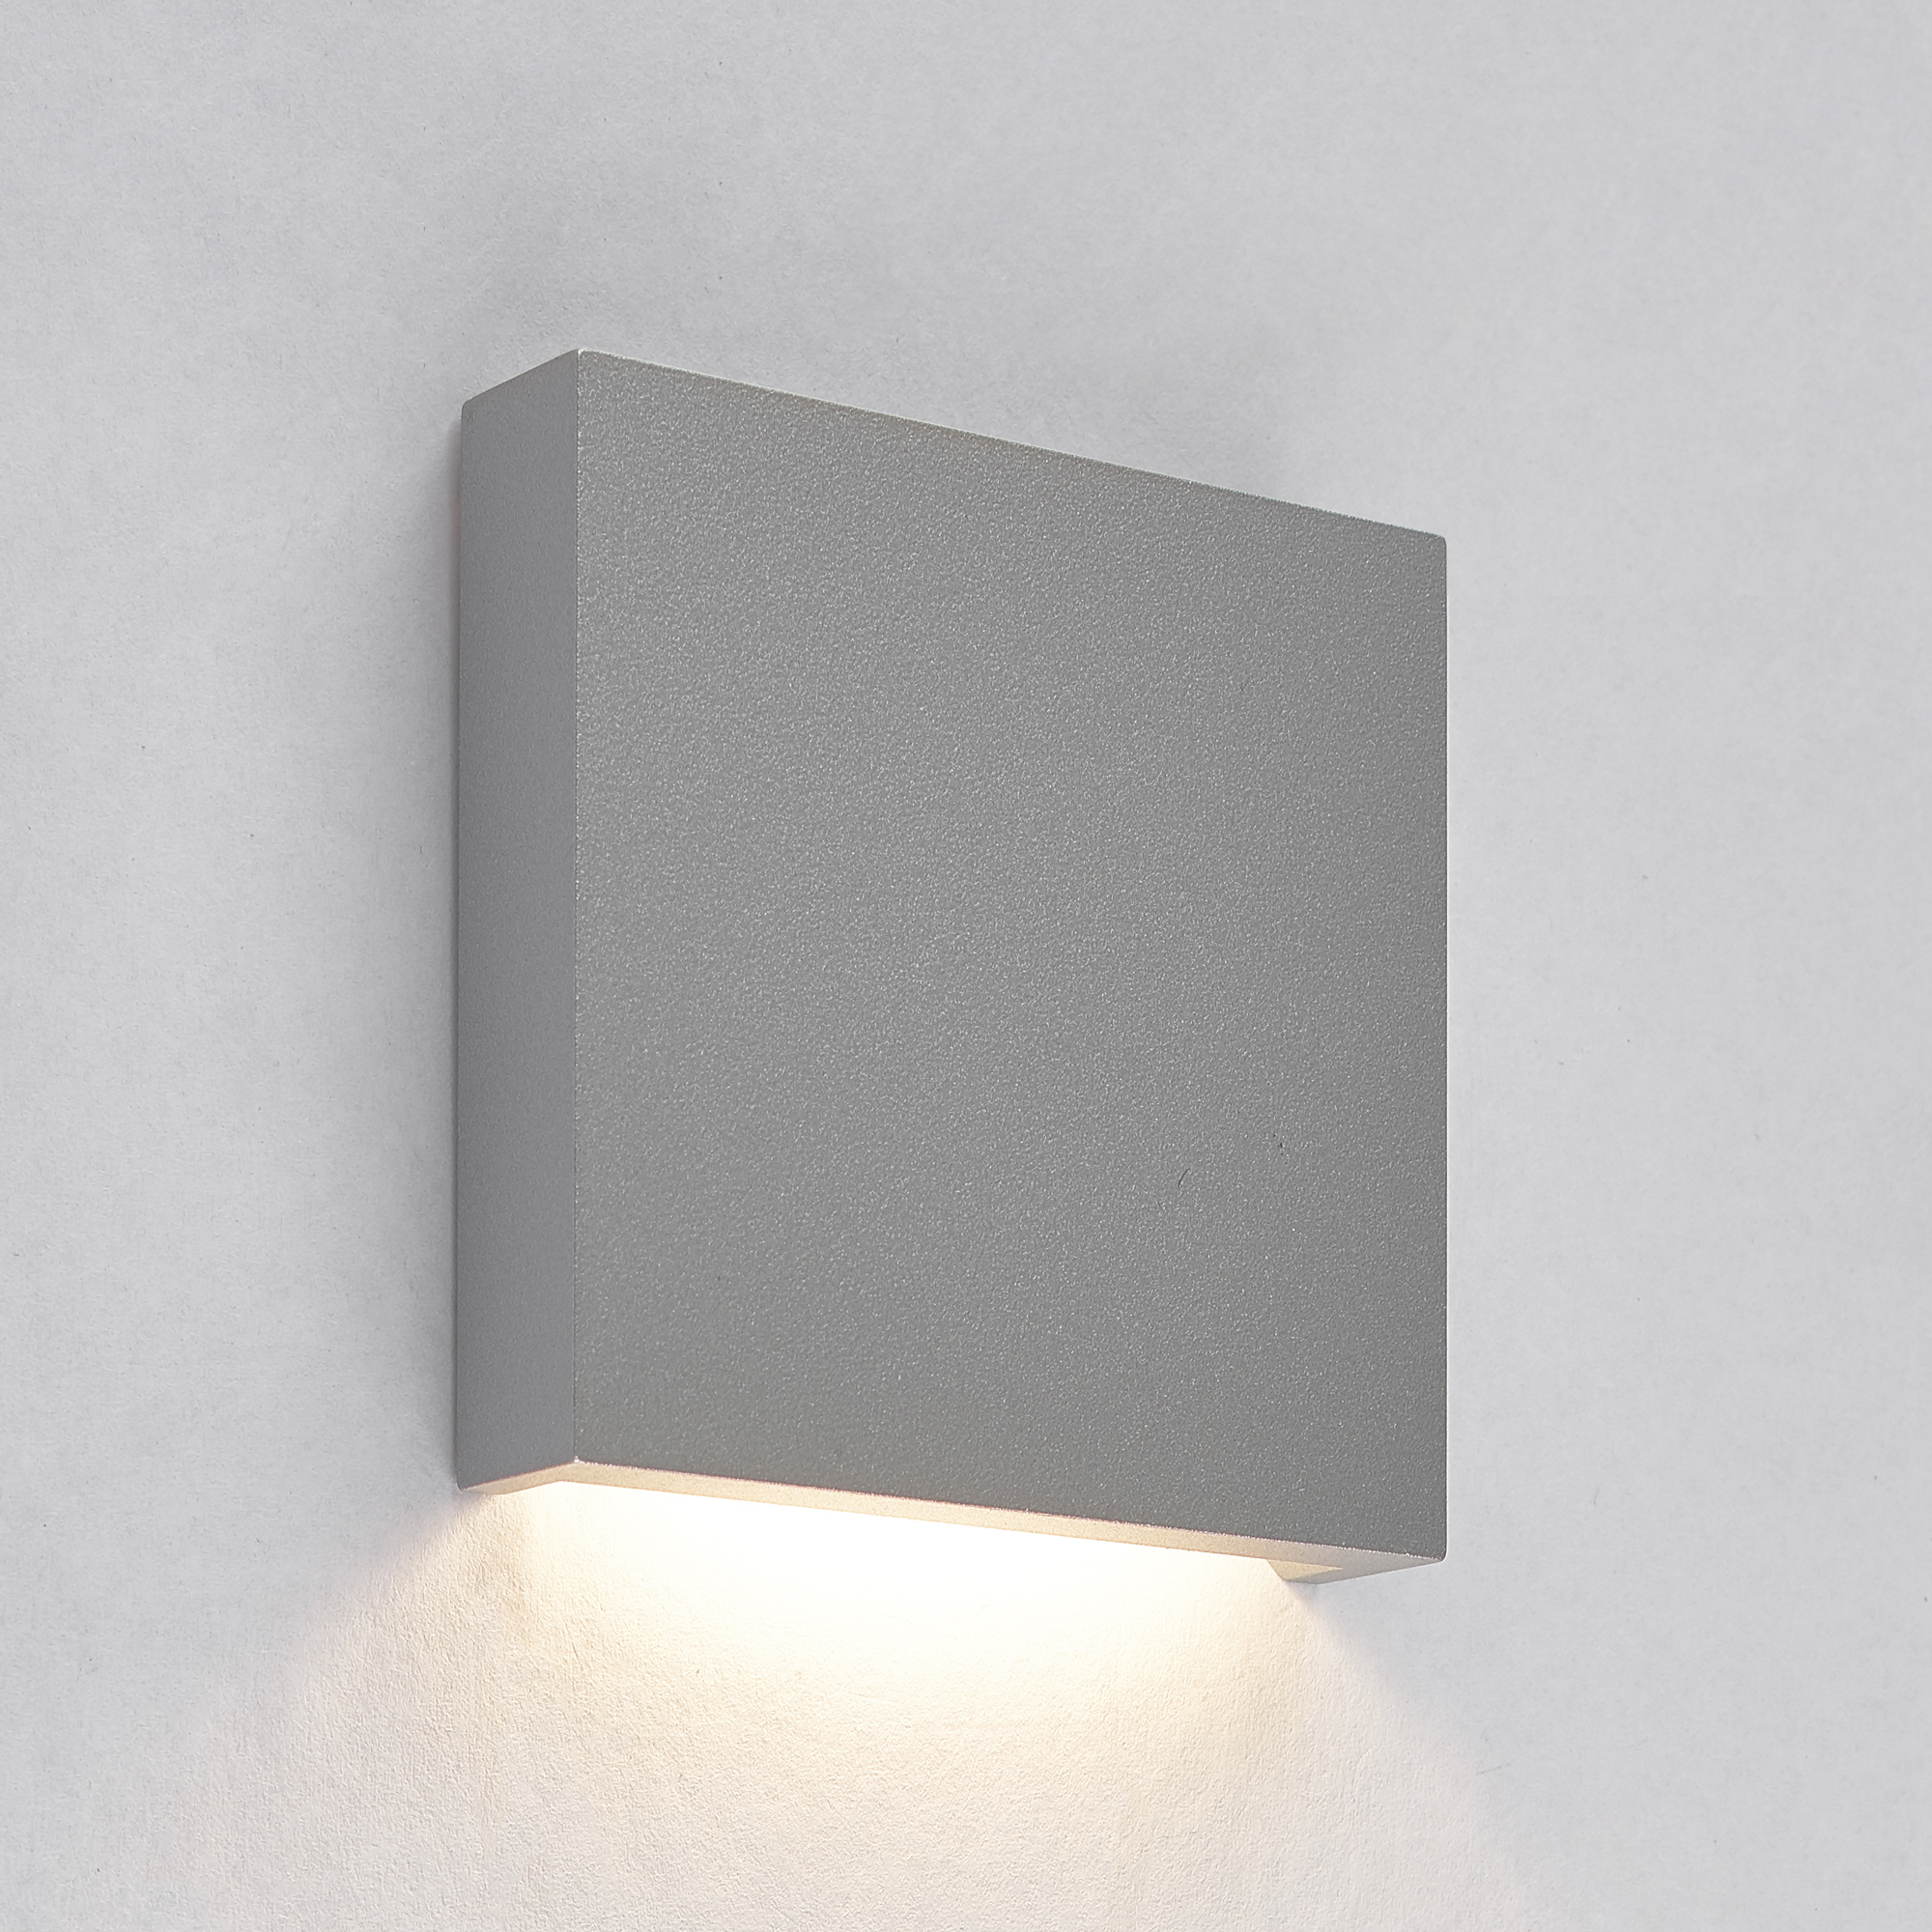 Q1 Square Step Light With Jbox And Driver By Molto Luce 56 5200 2